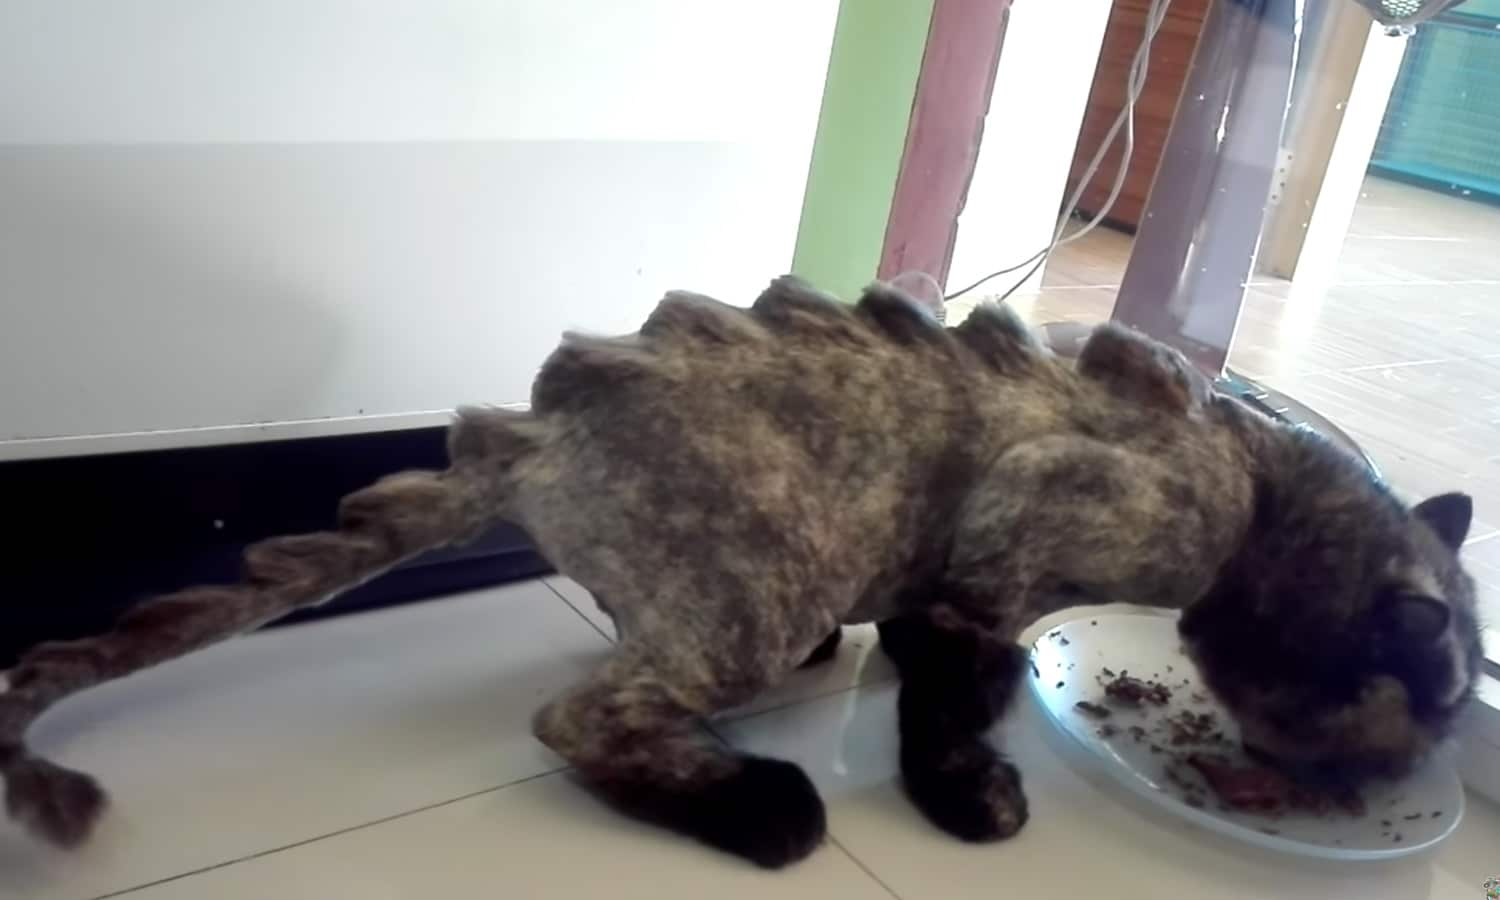 What You Need To Know About This Cat With A Dinosaur Haircut